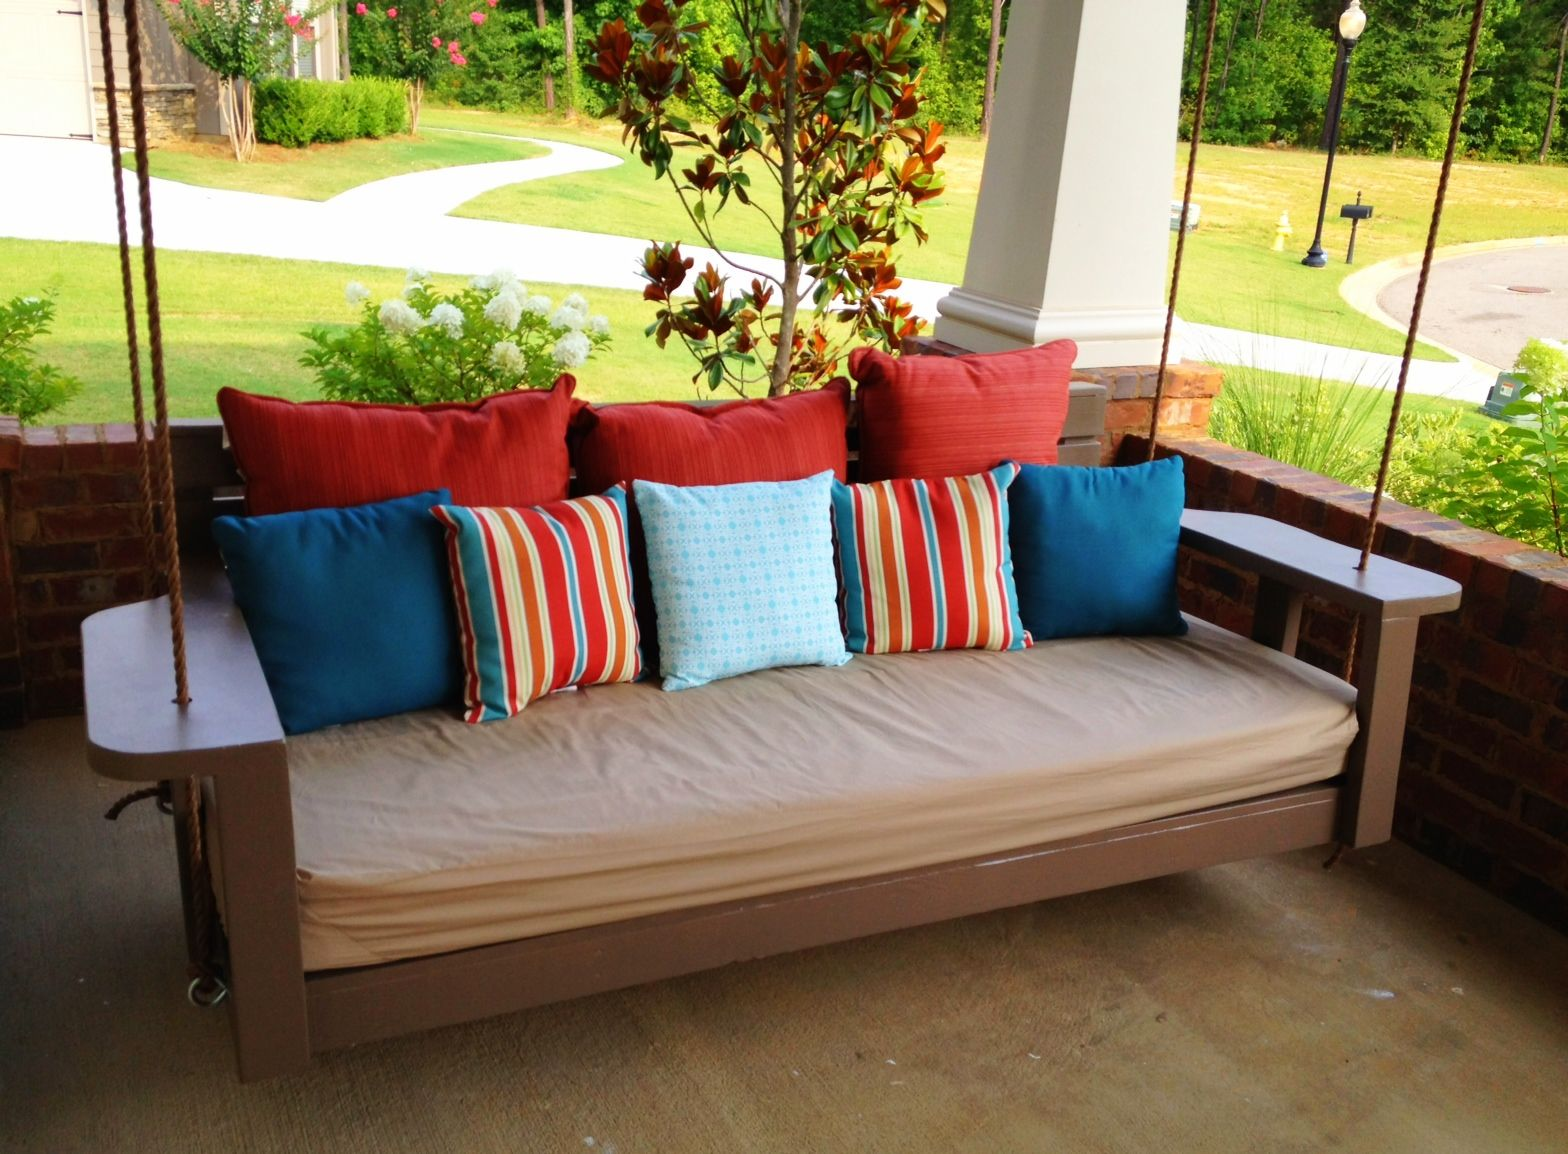 Outdoor hanging beds for sale - Hanging Porch Bed Getting Ready For Summer Enliven Your Porch With Comfy Swings